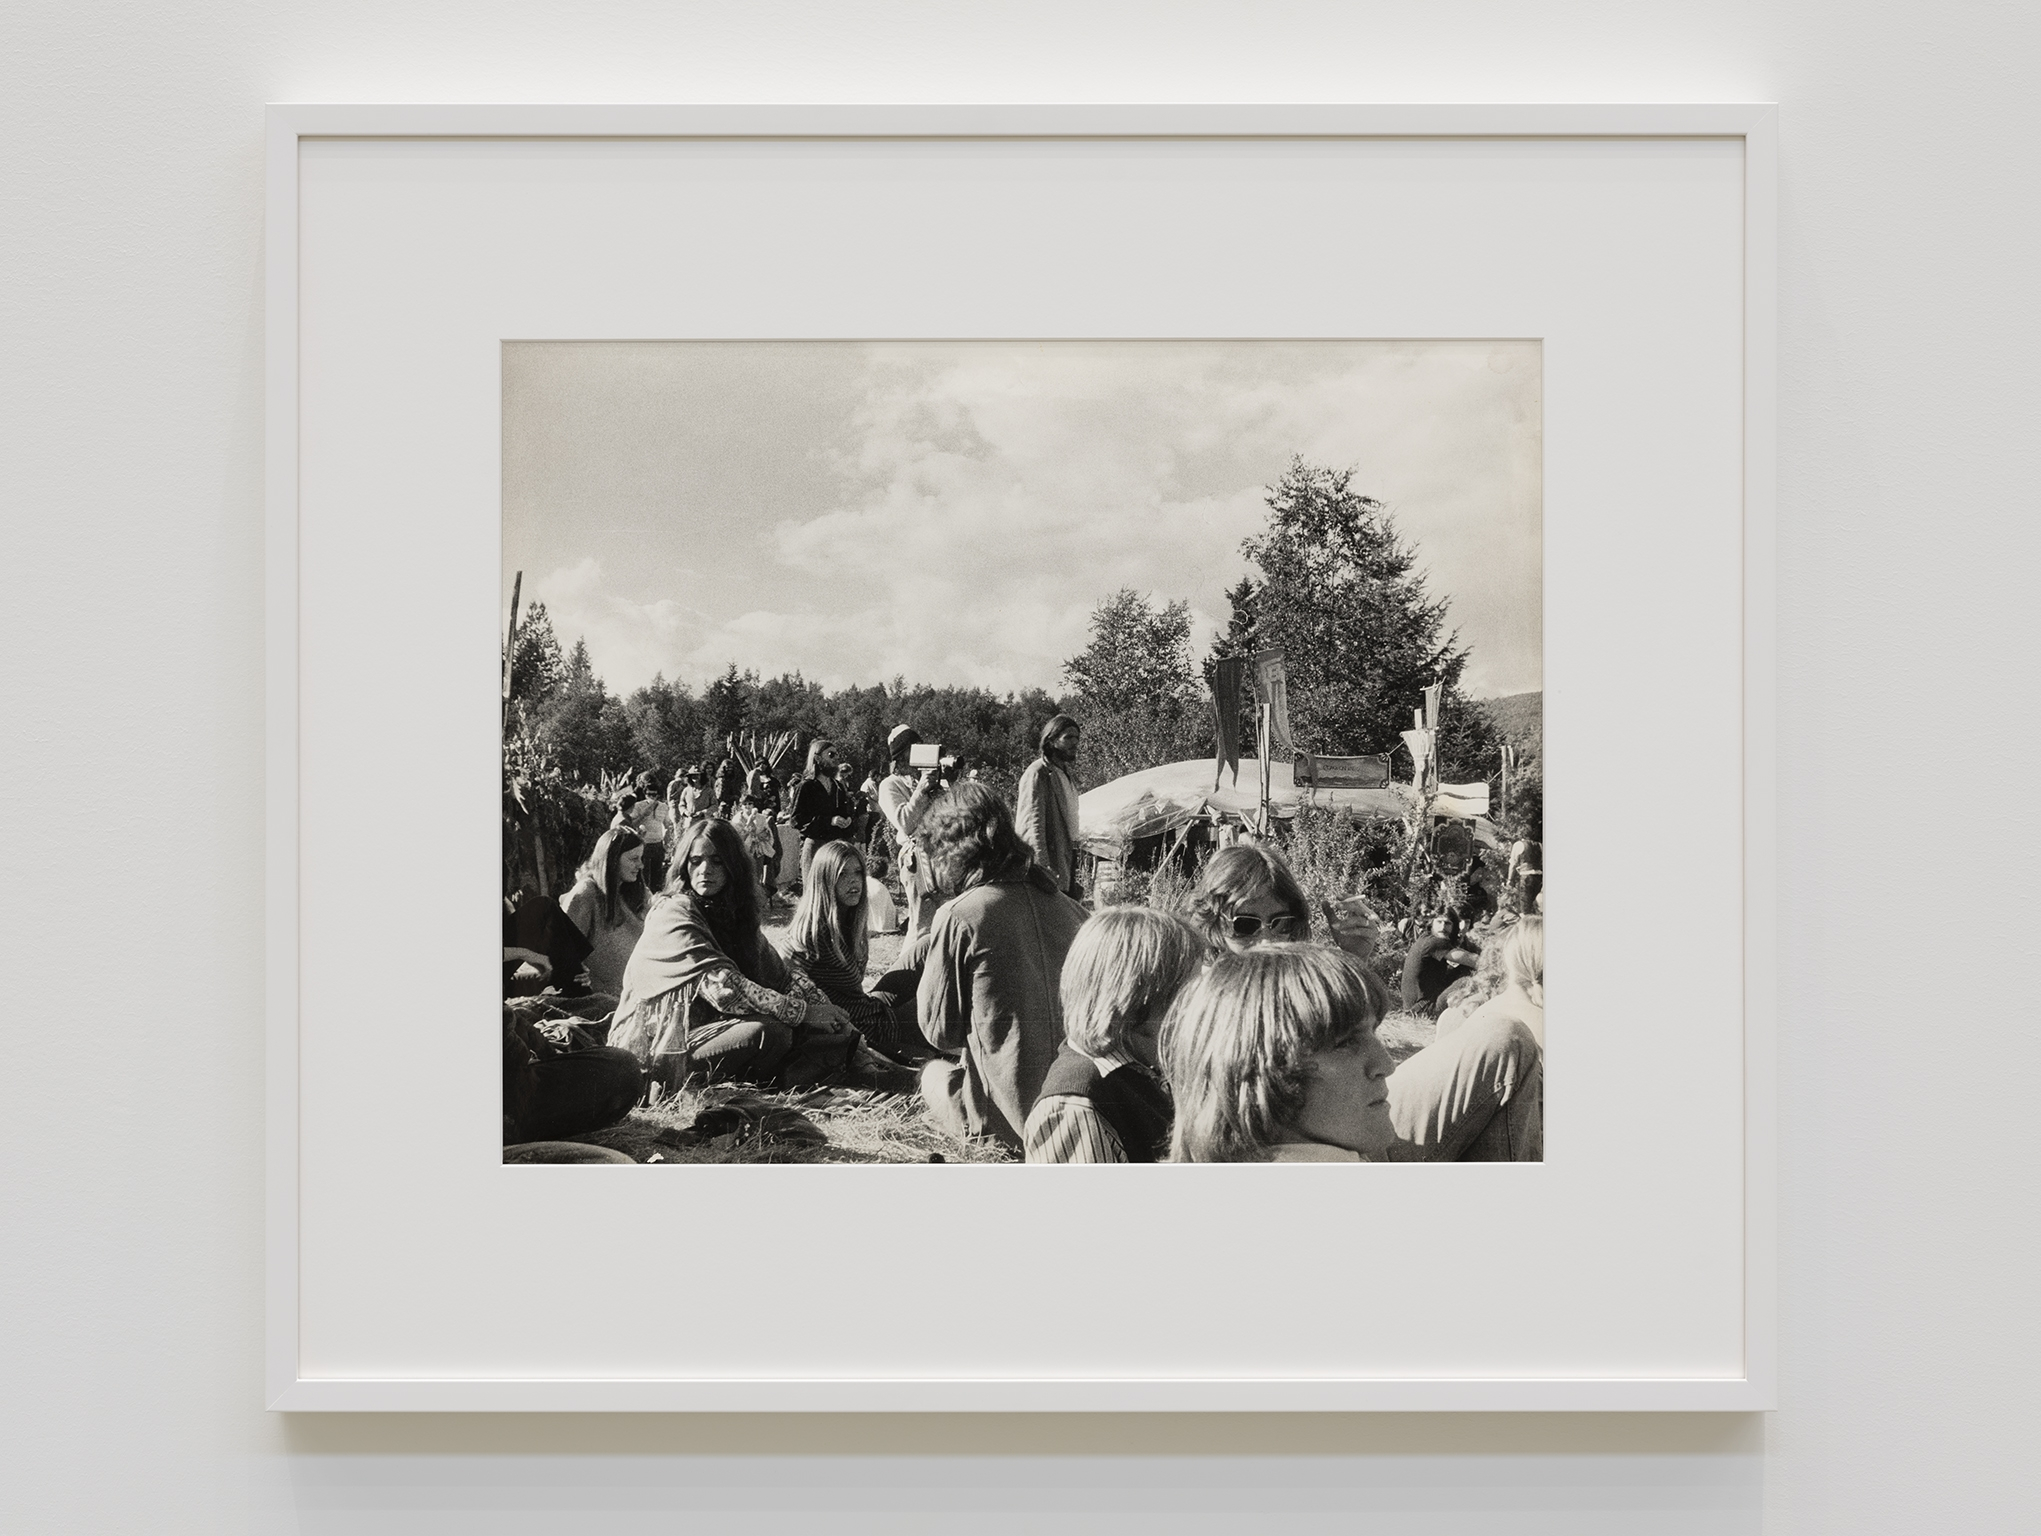 Ian Wallace, At the Pleasure Faire, 1971, silver gelatin print, 25 x 29 in. (62 x 72 cm) by